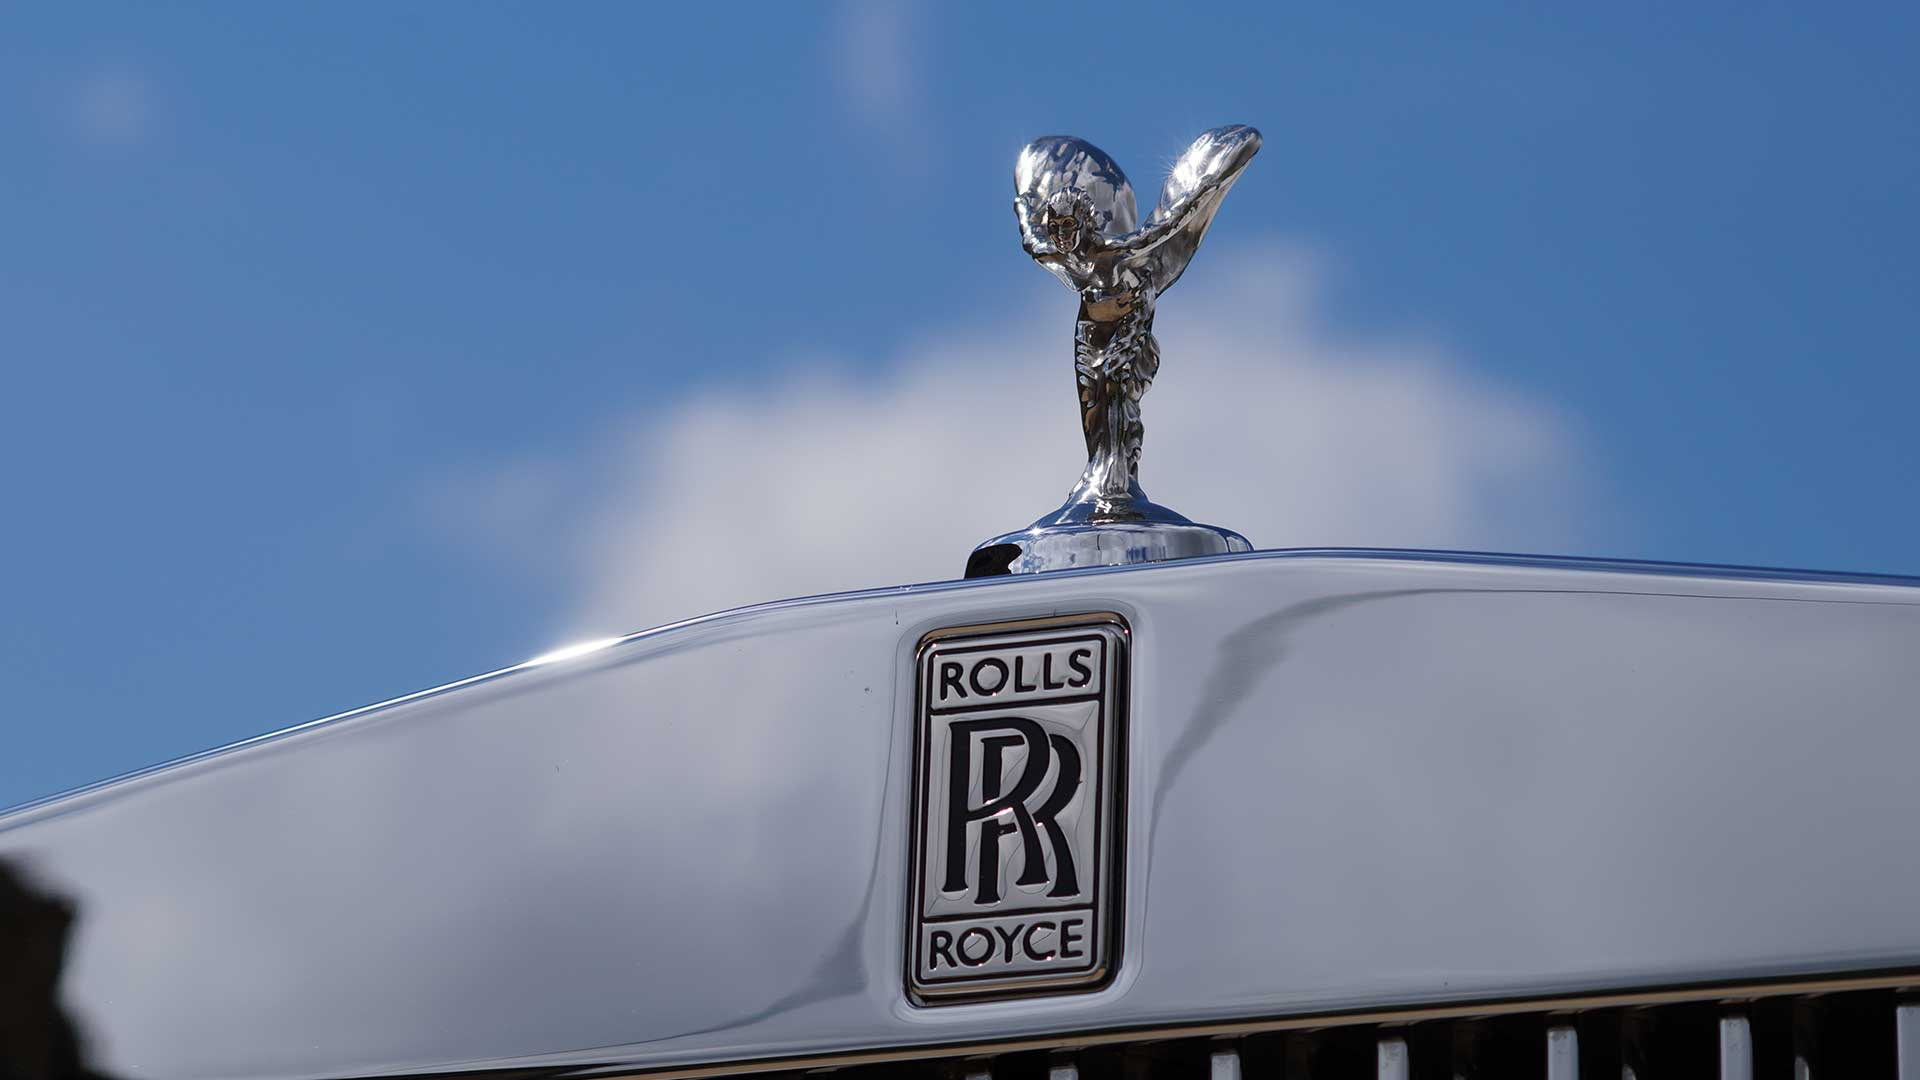 Rolls Royce Phantom Key Features Azure Wedding Cars